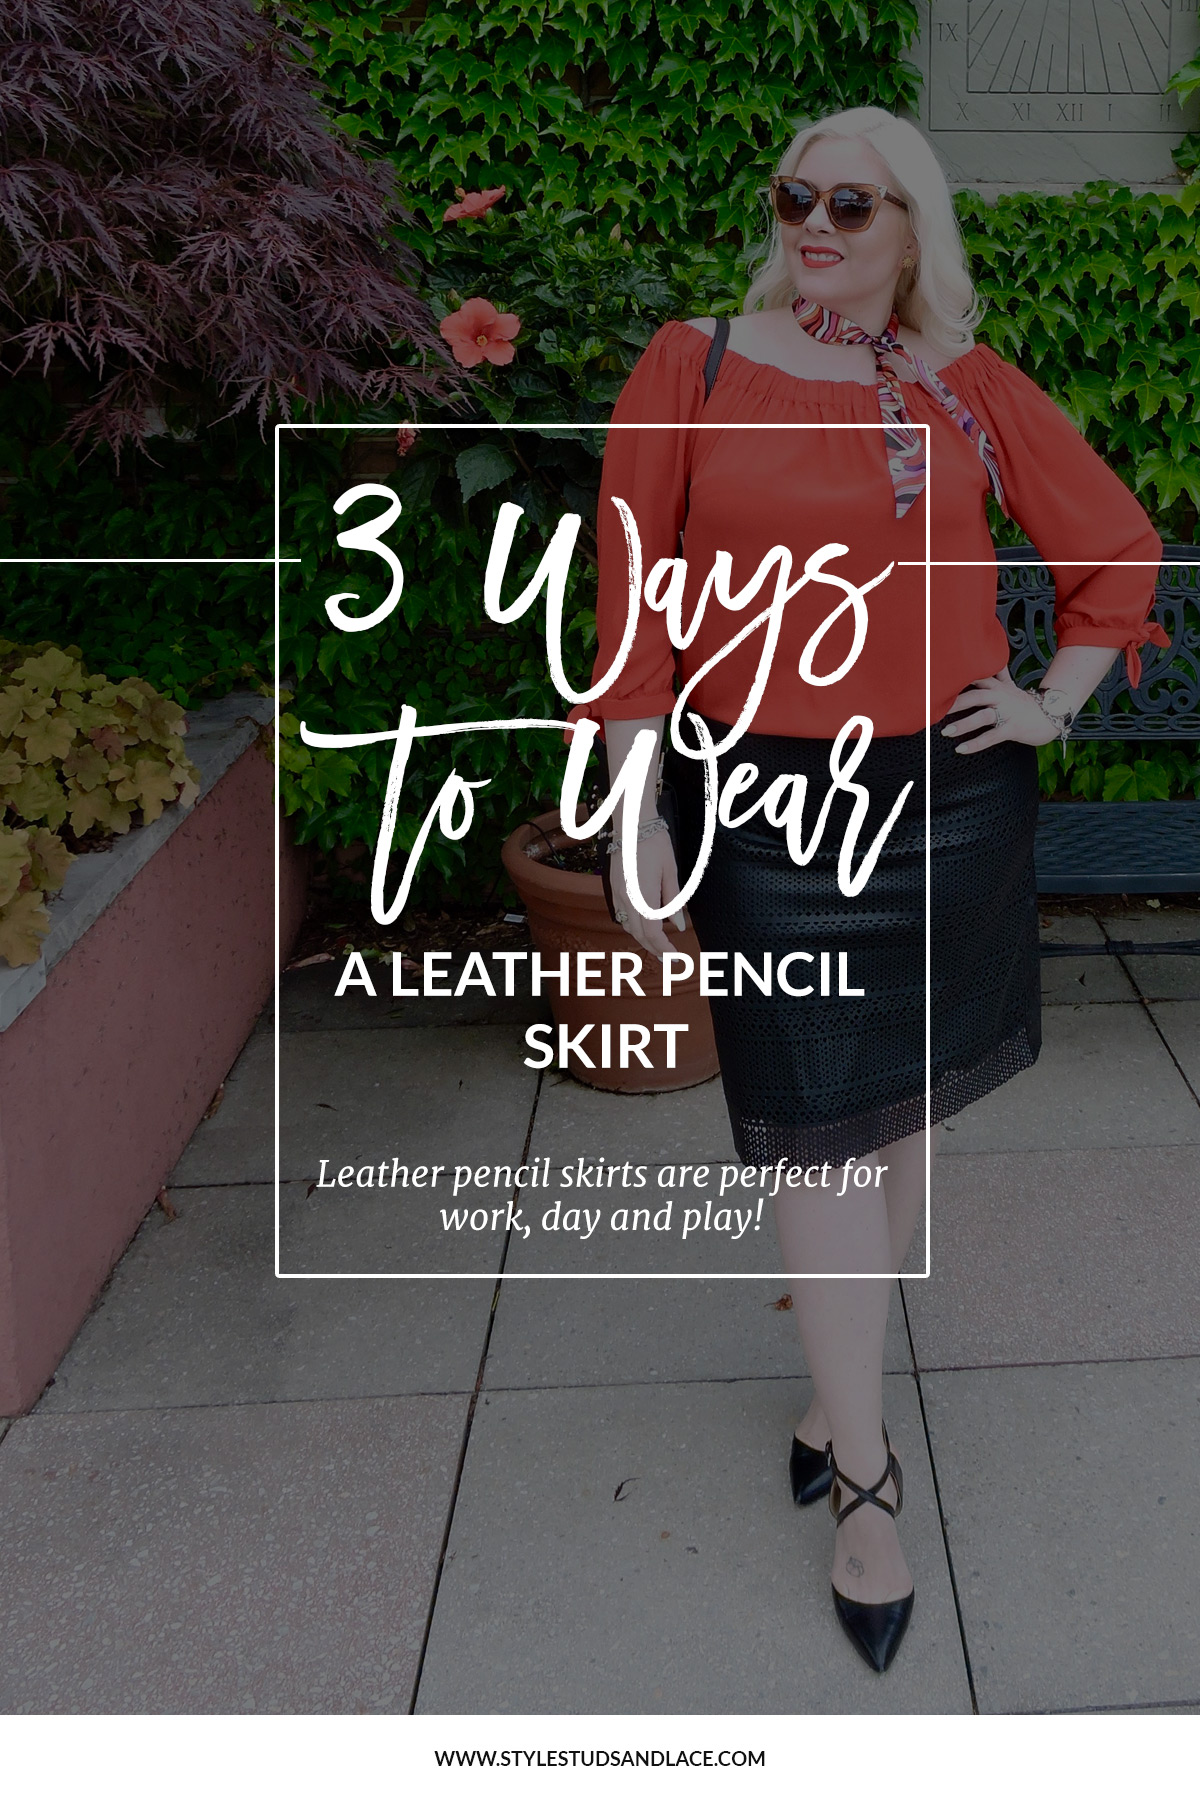 3 great ways to wear a leather pencil skirt | How to wear a leather skirt to work, dressing a leather skirt up for a night out and how to wear a leather skirt casually